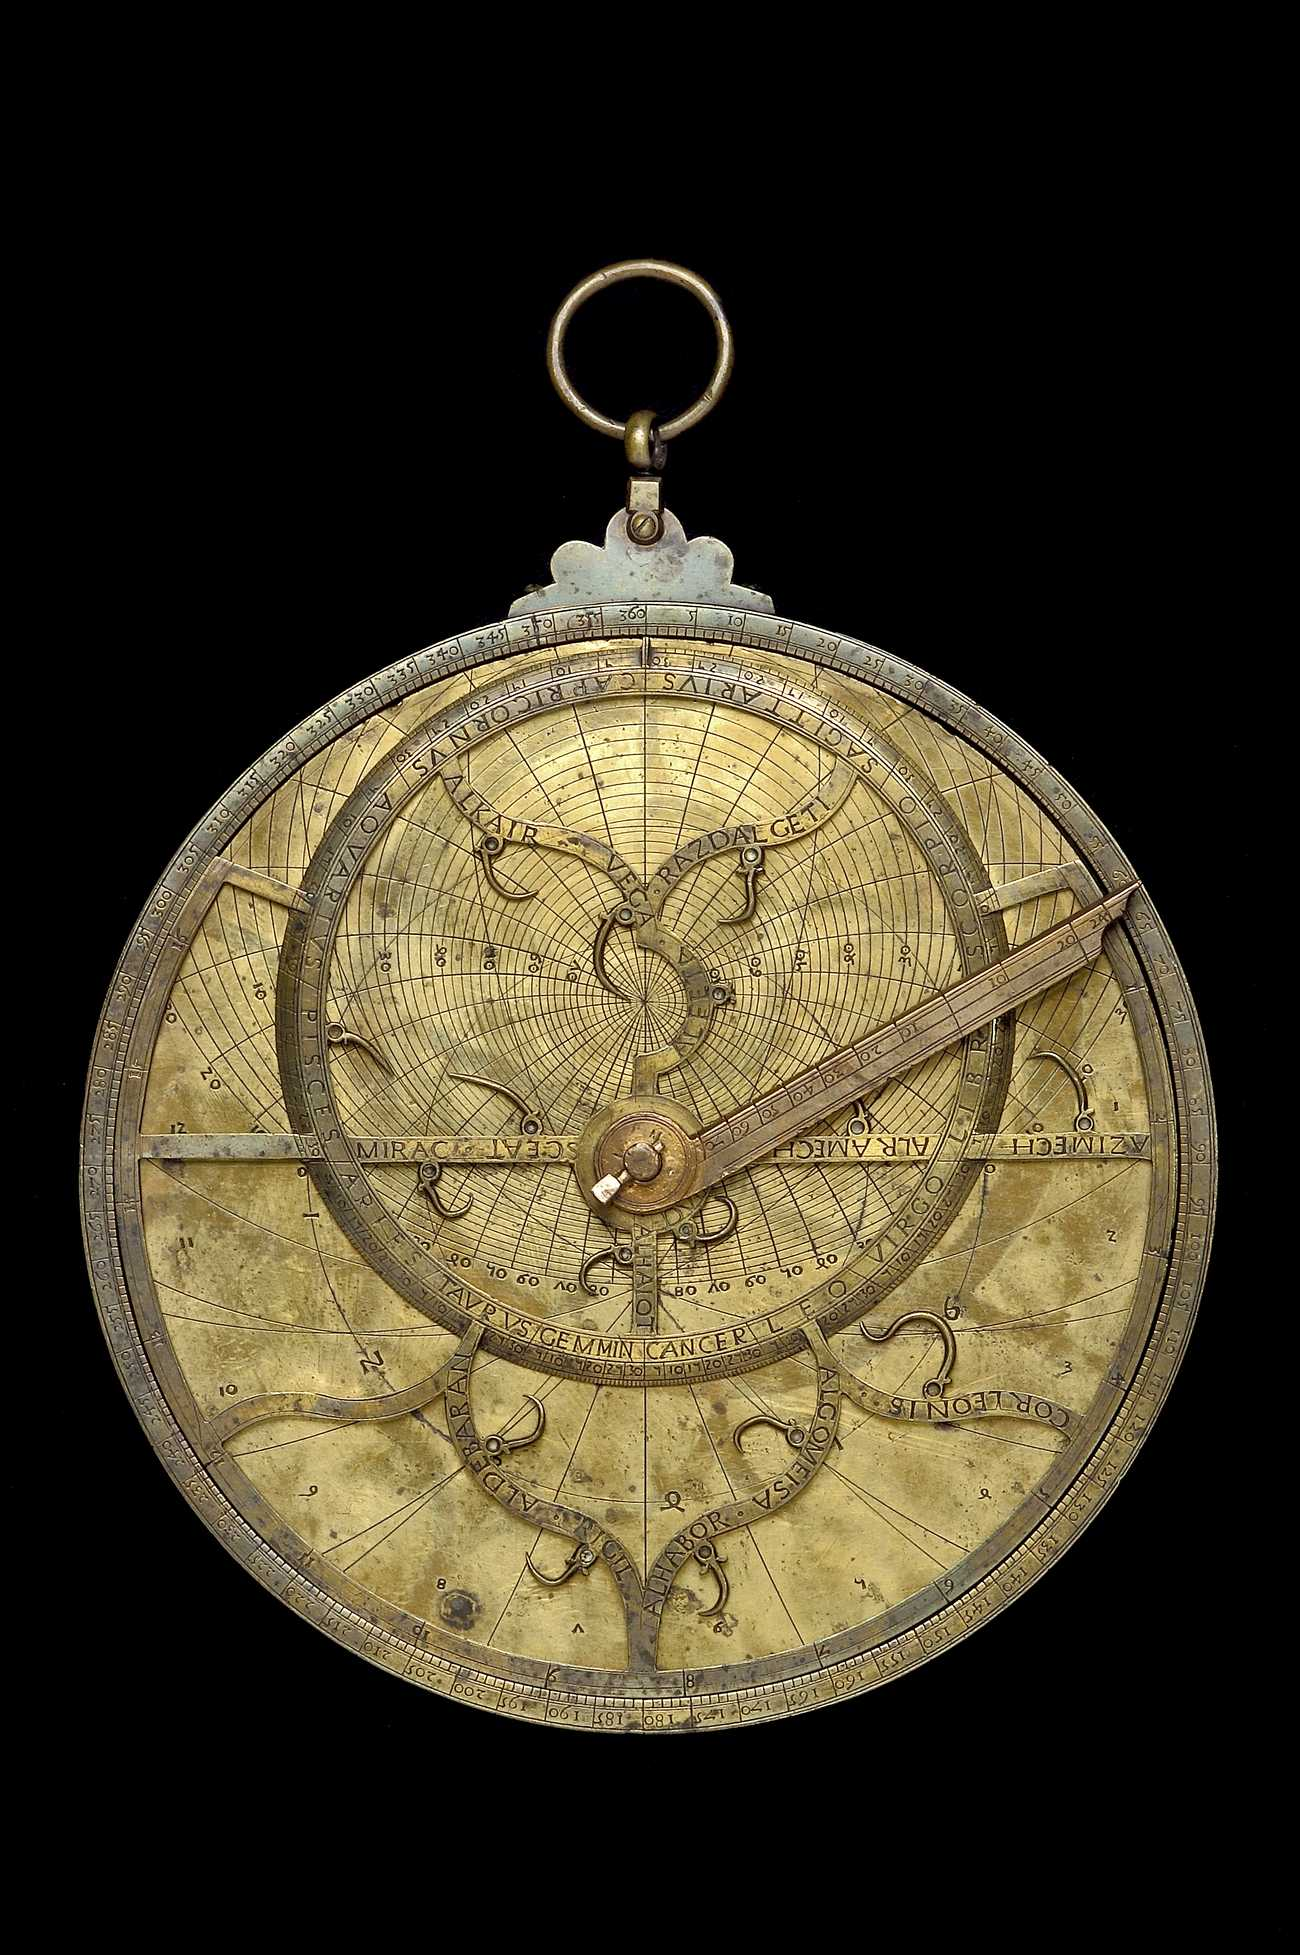 Astrolabe Image Report Inventory Number 52473: Astrolabe Report (inventory Number 35146